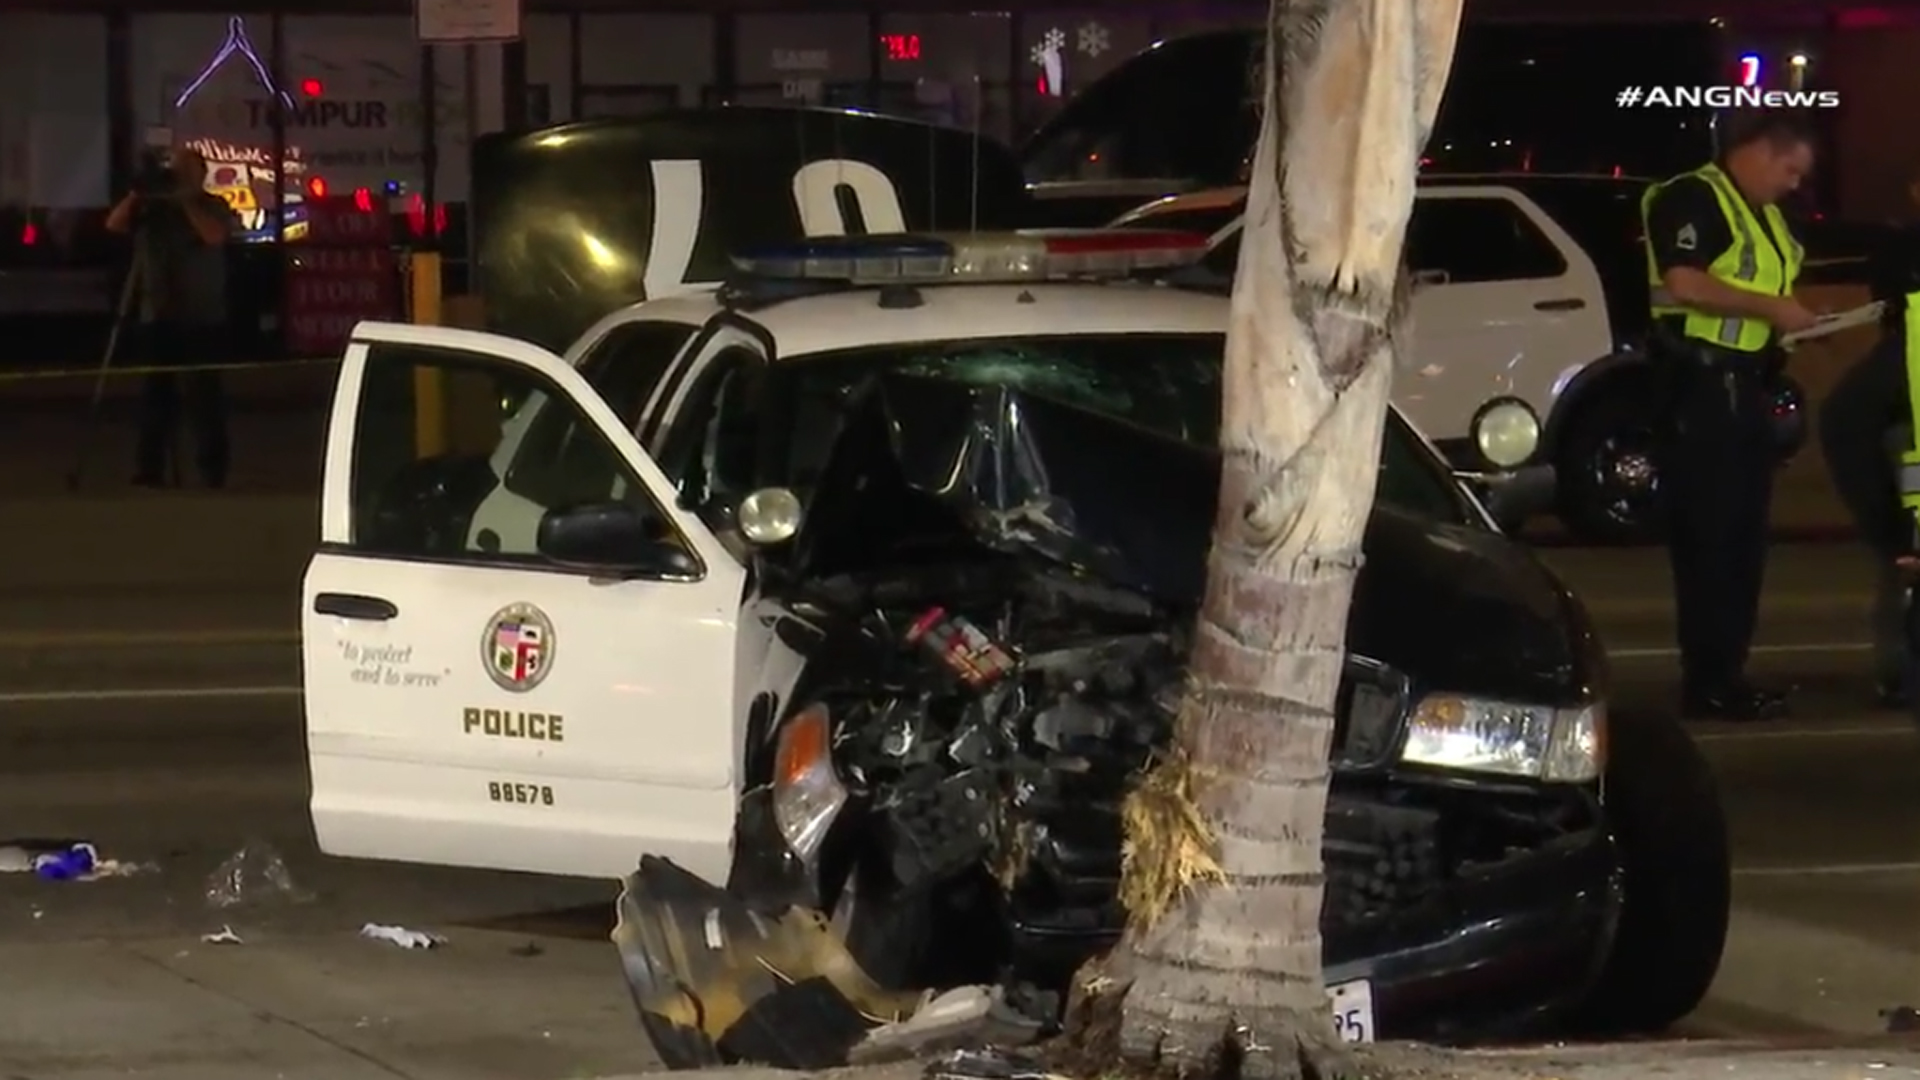 An LAPD vehicle involved in a chase crashed into a palm tree in Hancock Park on June 5, 2019. (Credit: ANG News)